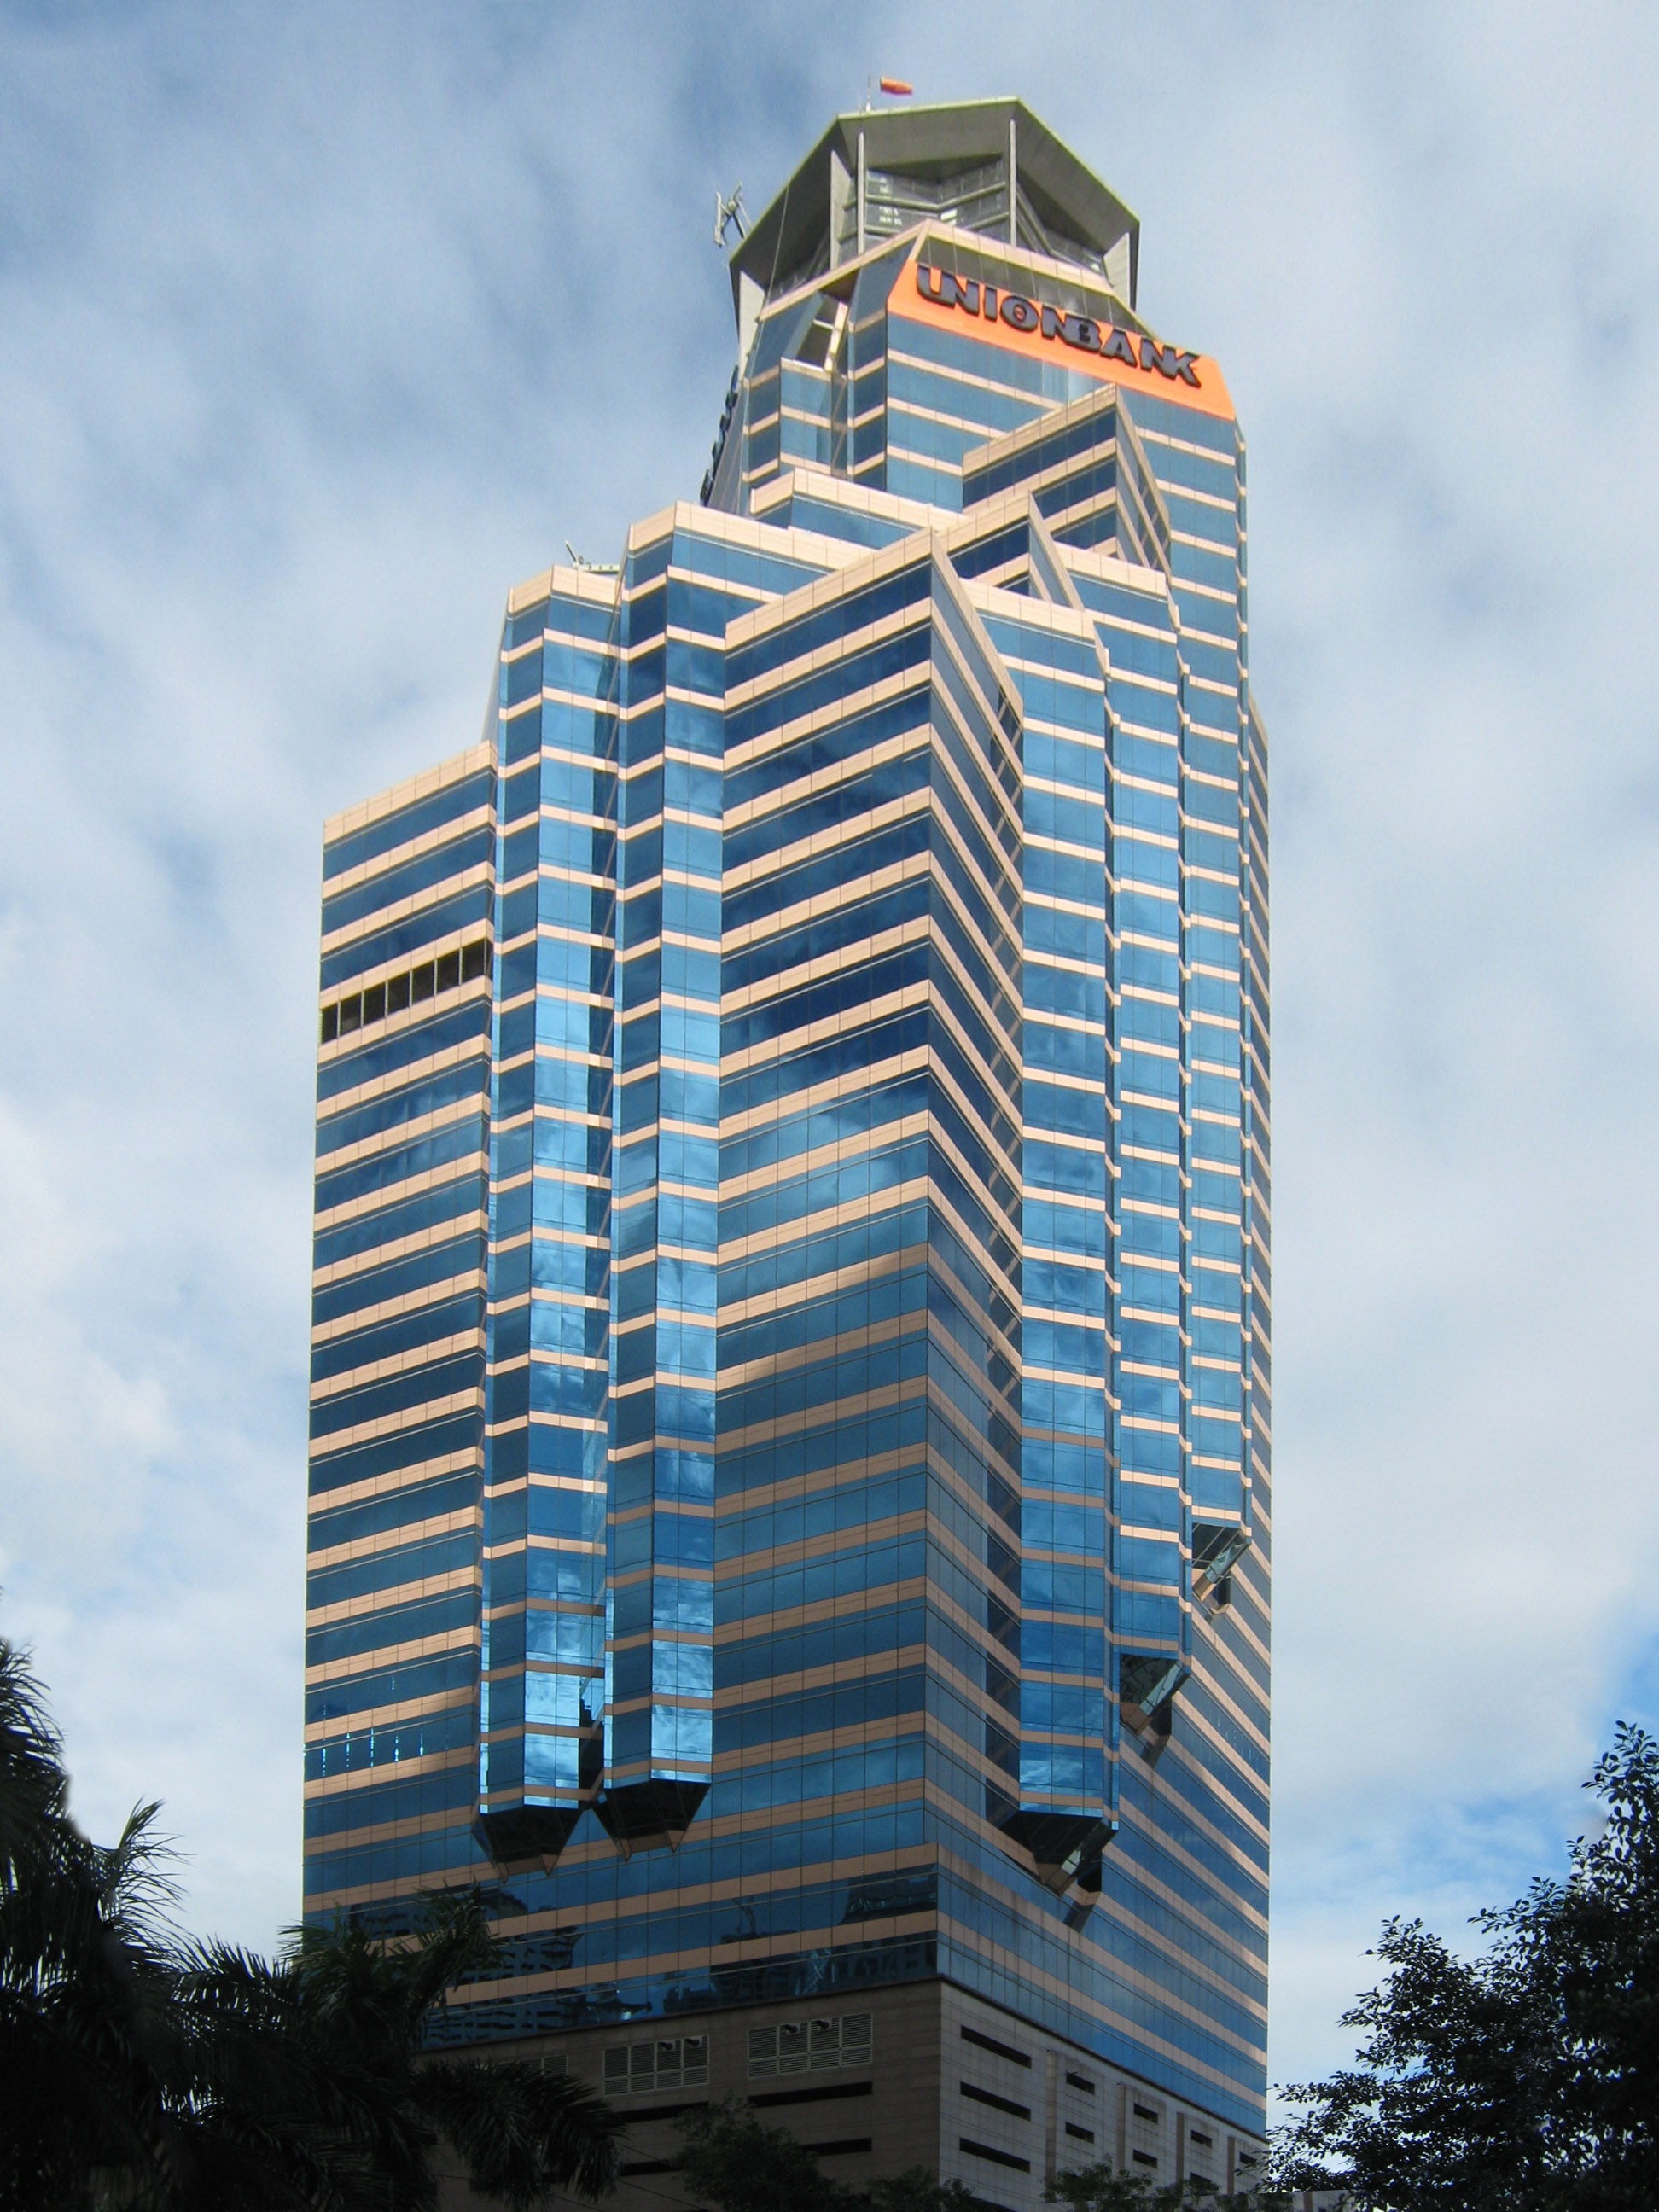 tallest building in the philippines 23092016  here are some of the tallest buildings in seattle  that height makes the building the fourth tallest building in  religious beliefs in the philippines.